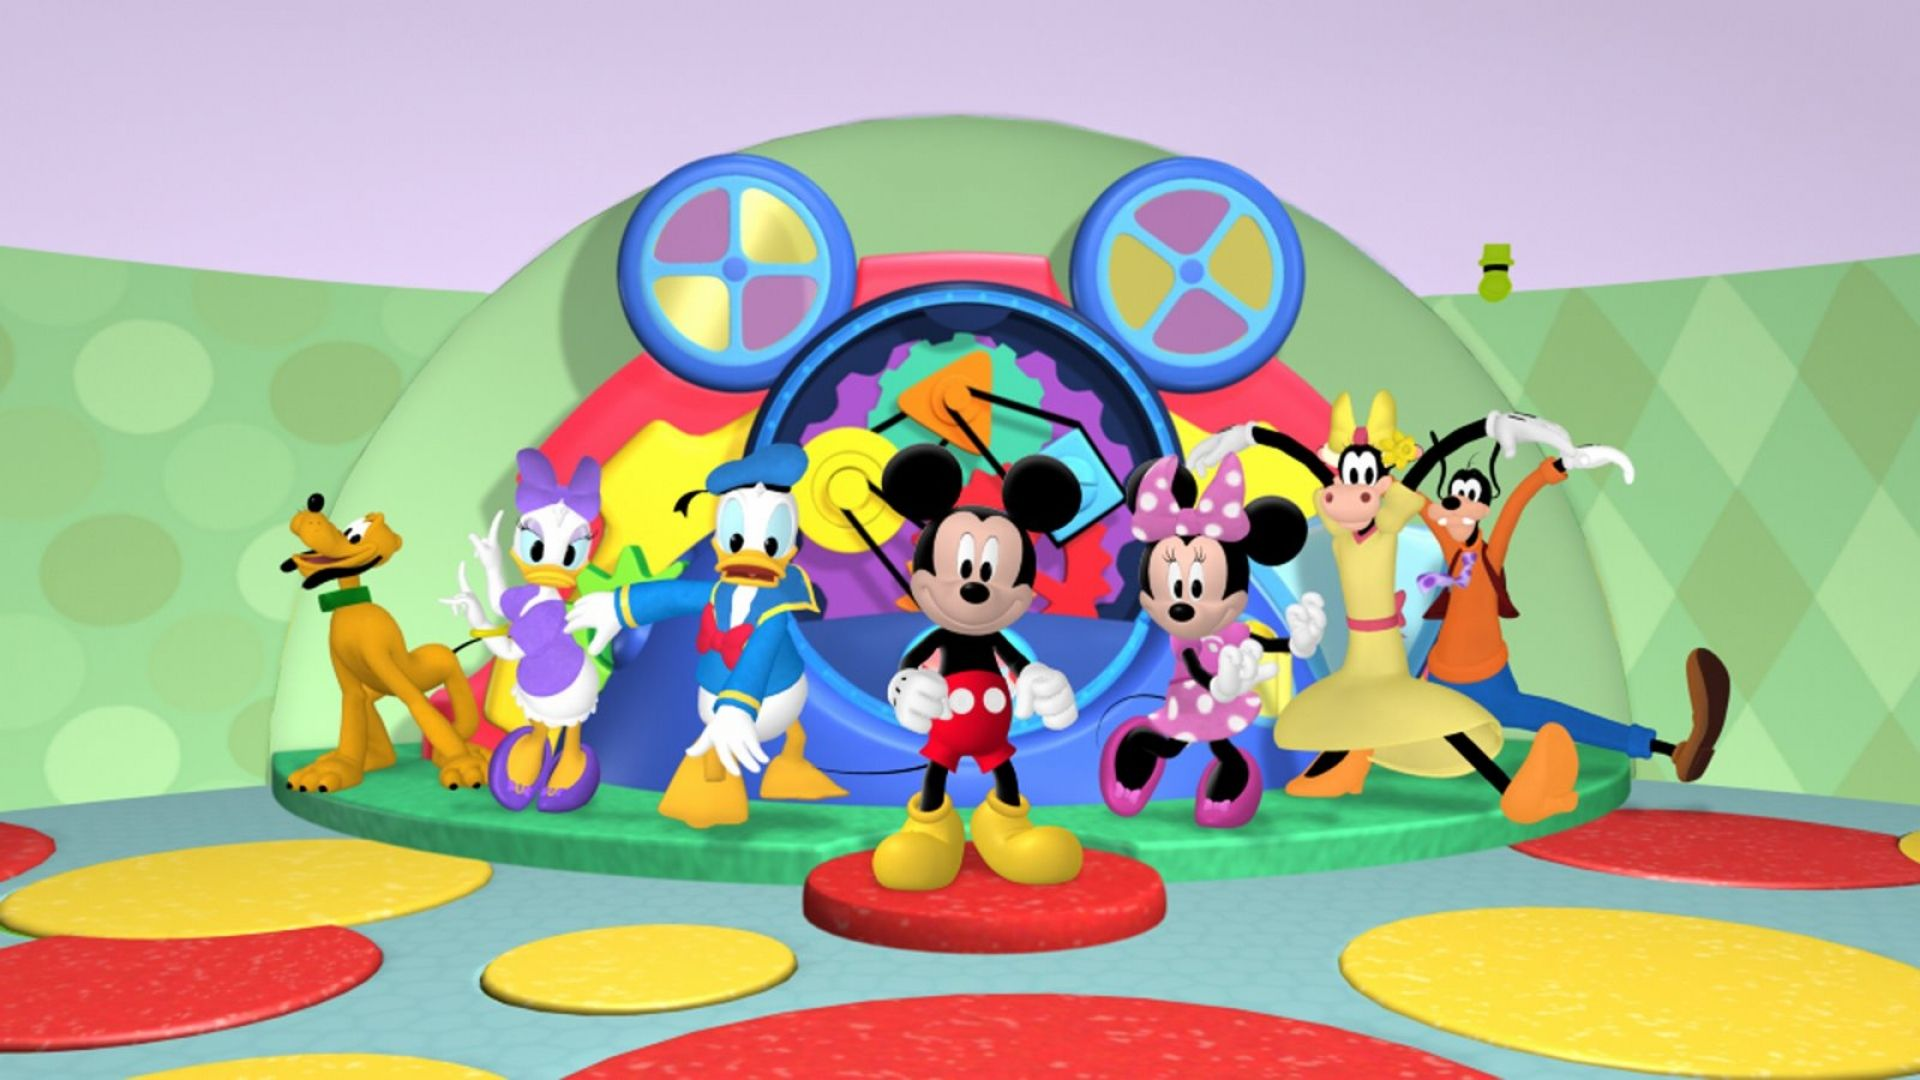 1920x1080 Mickey Mouse Wide Screen Wallpapers 1080i | Wide Screen Wallpaper ...